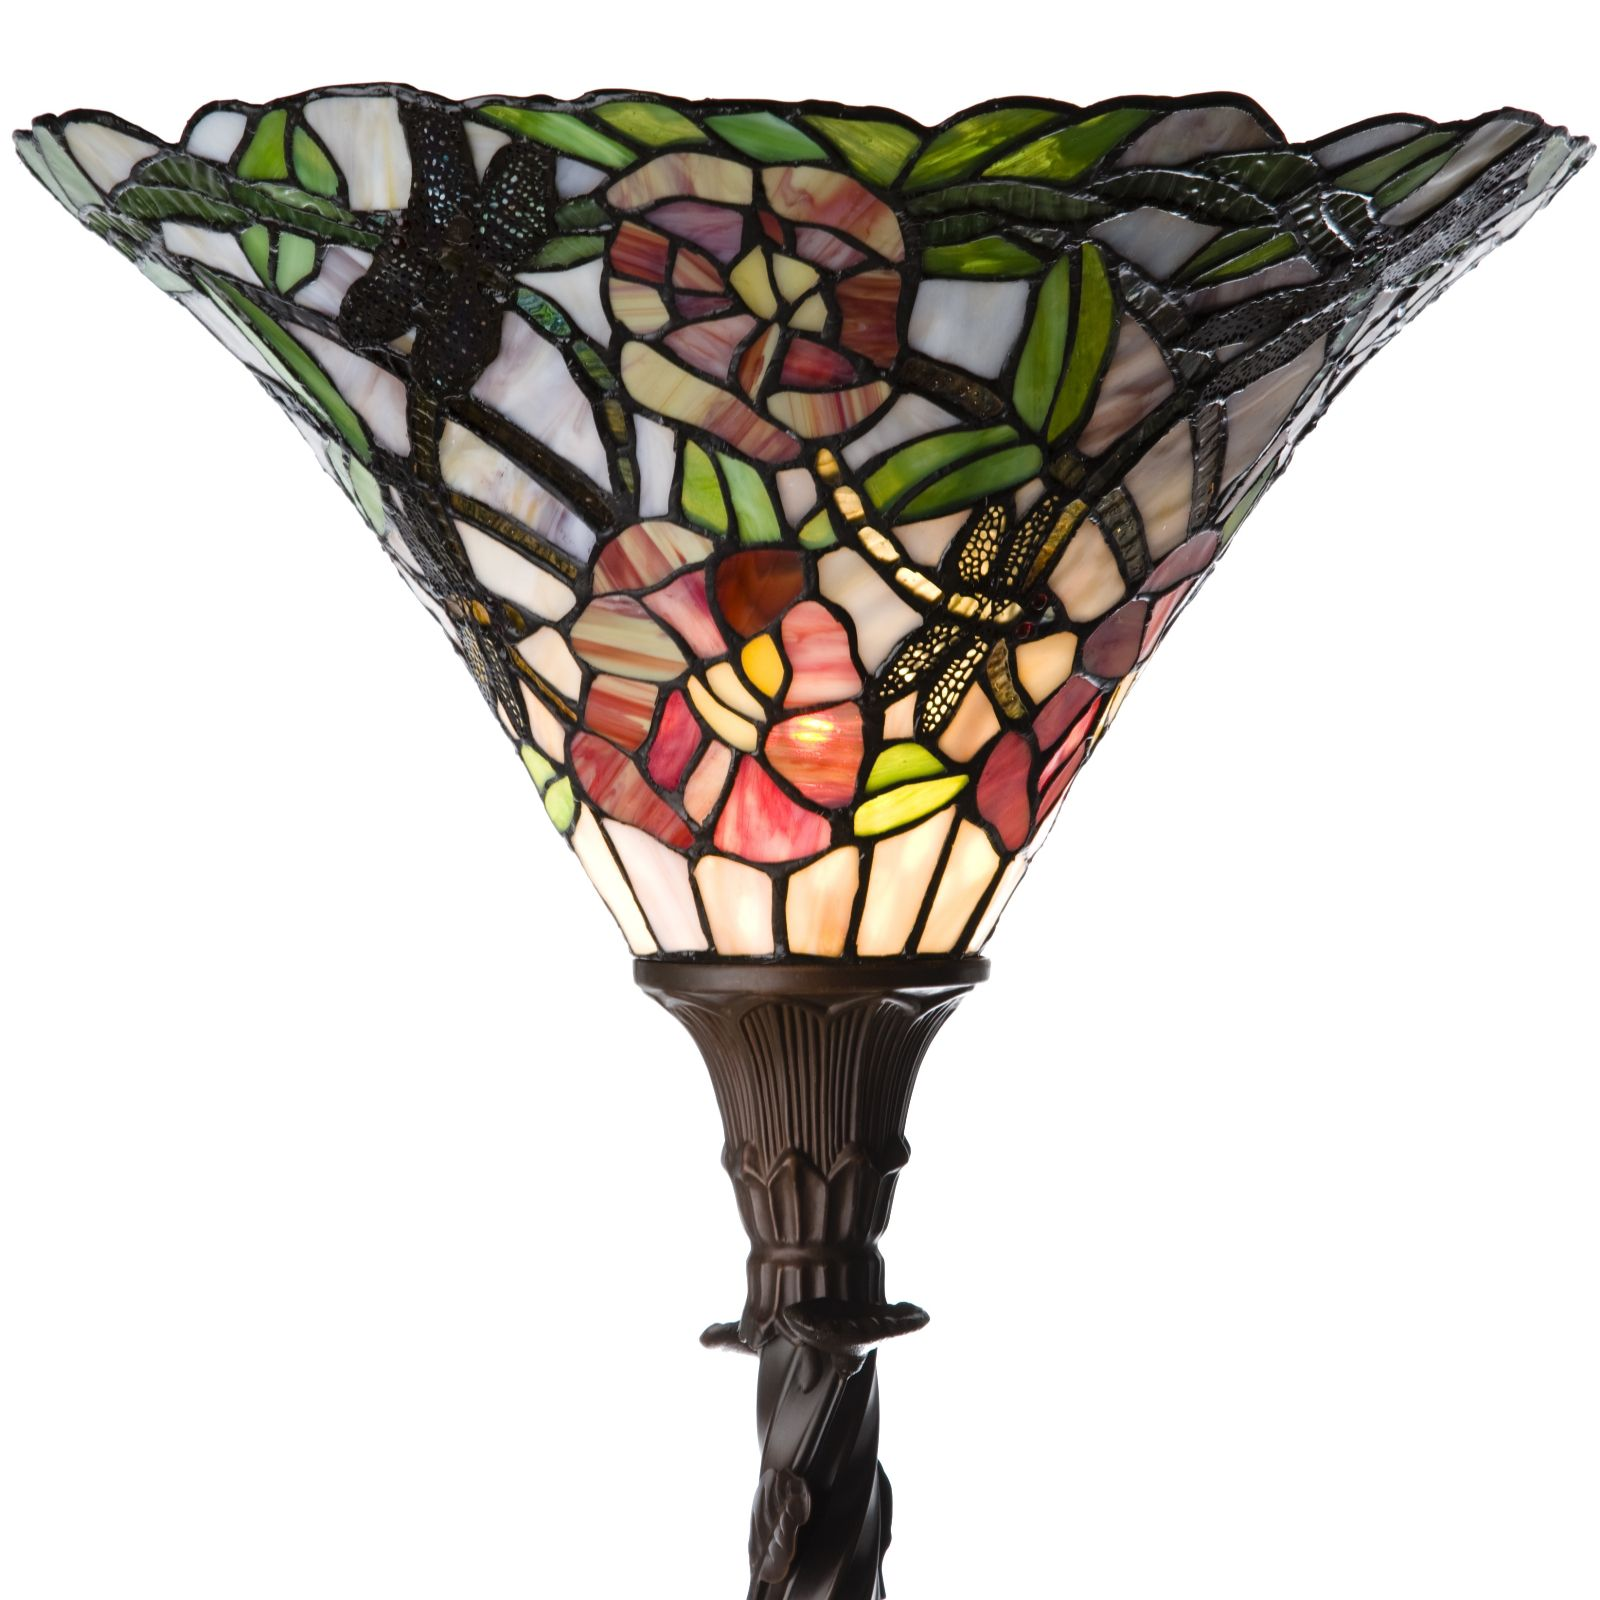 Tiffany Style Handcrafted Floral Jungle Floor Lamp   QVC UK